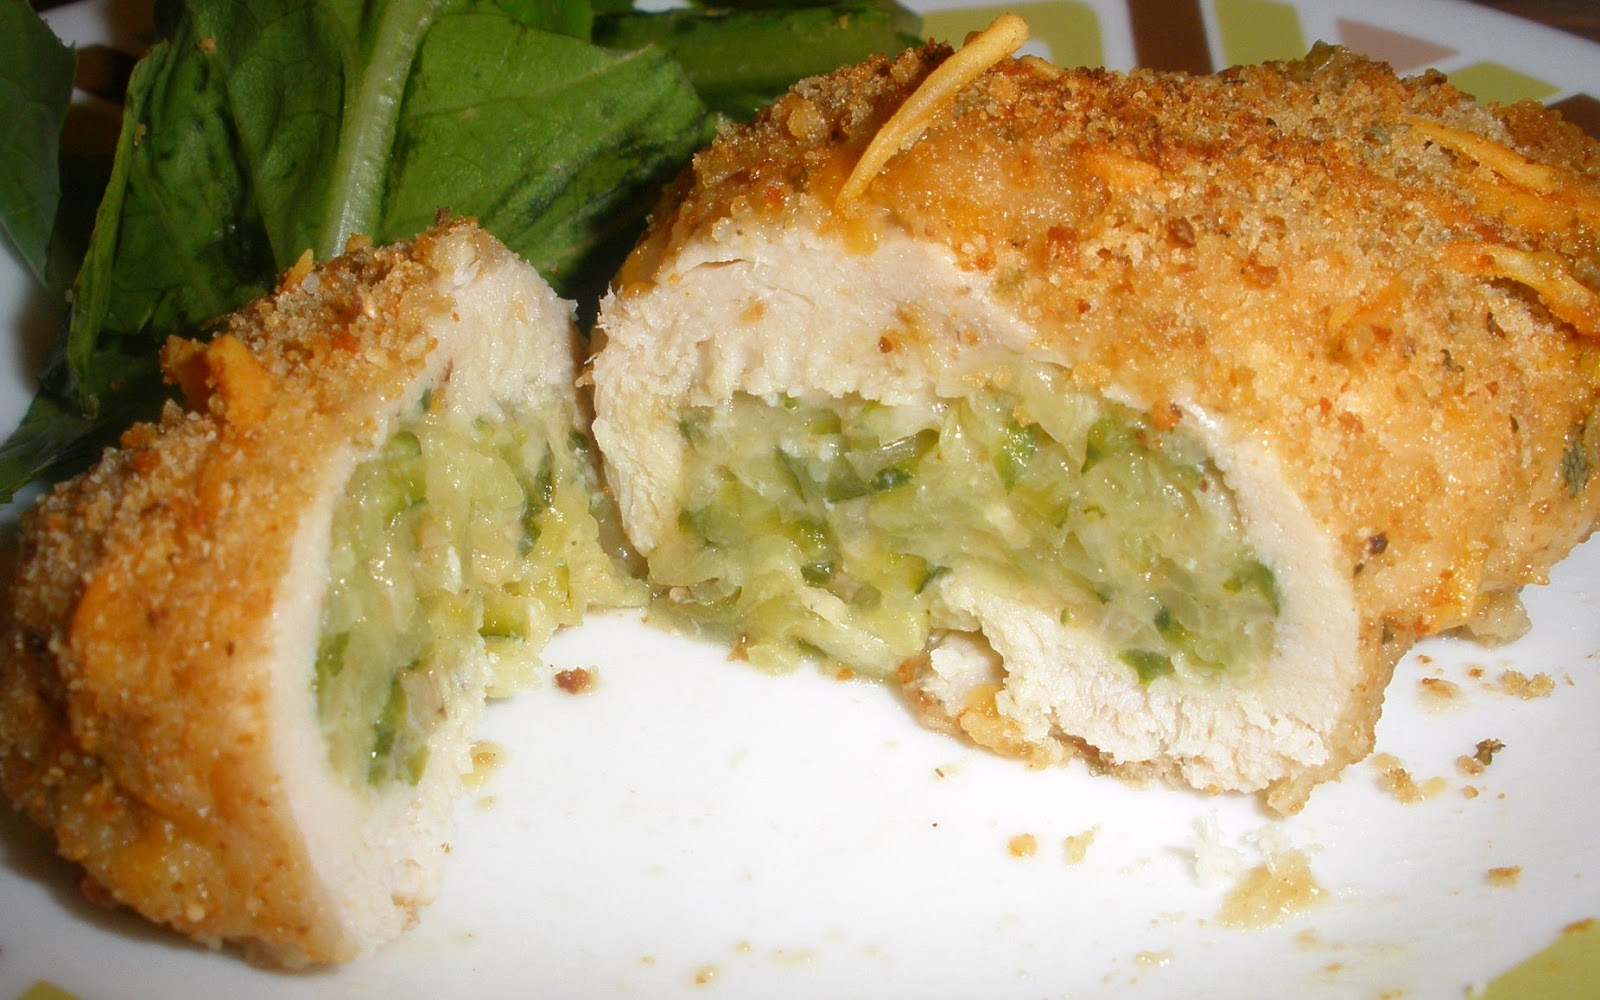 with chicken rollatini stuffed with after frying chicken stuffing it ...